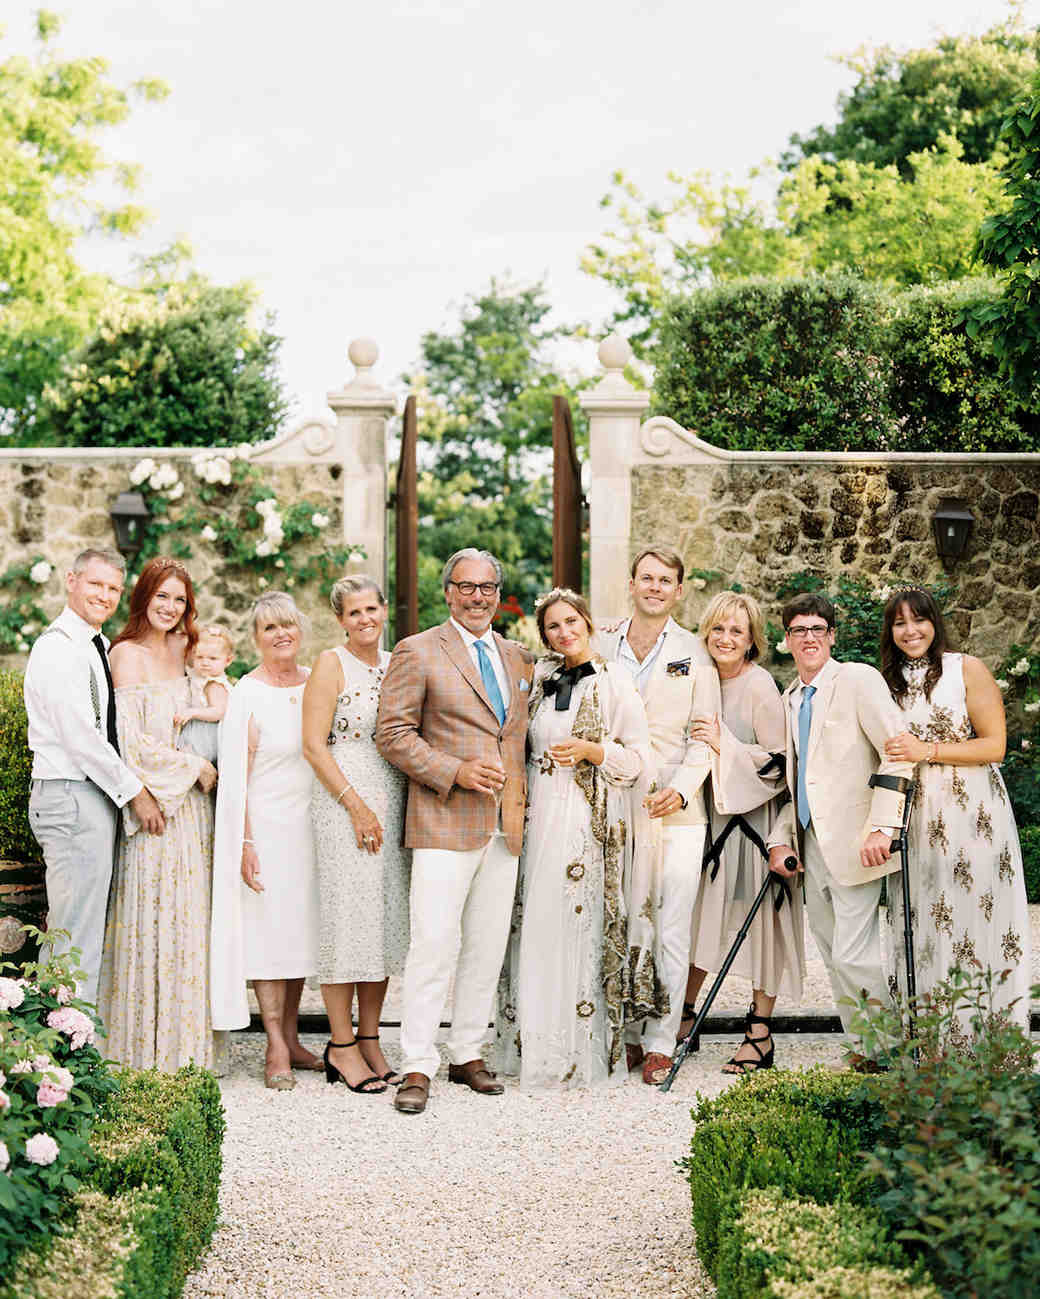 A Comprehensive Guide to Wedding Guest Attire | Martha Stewart Weddings